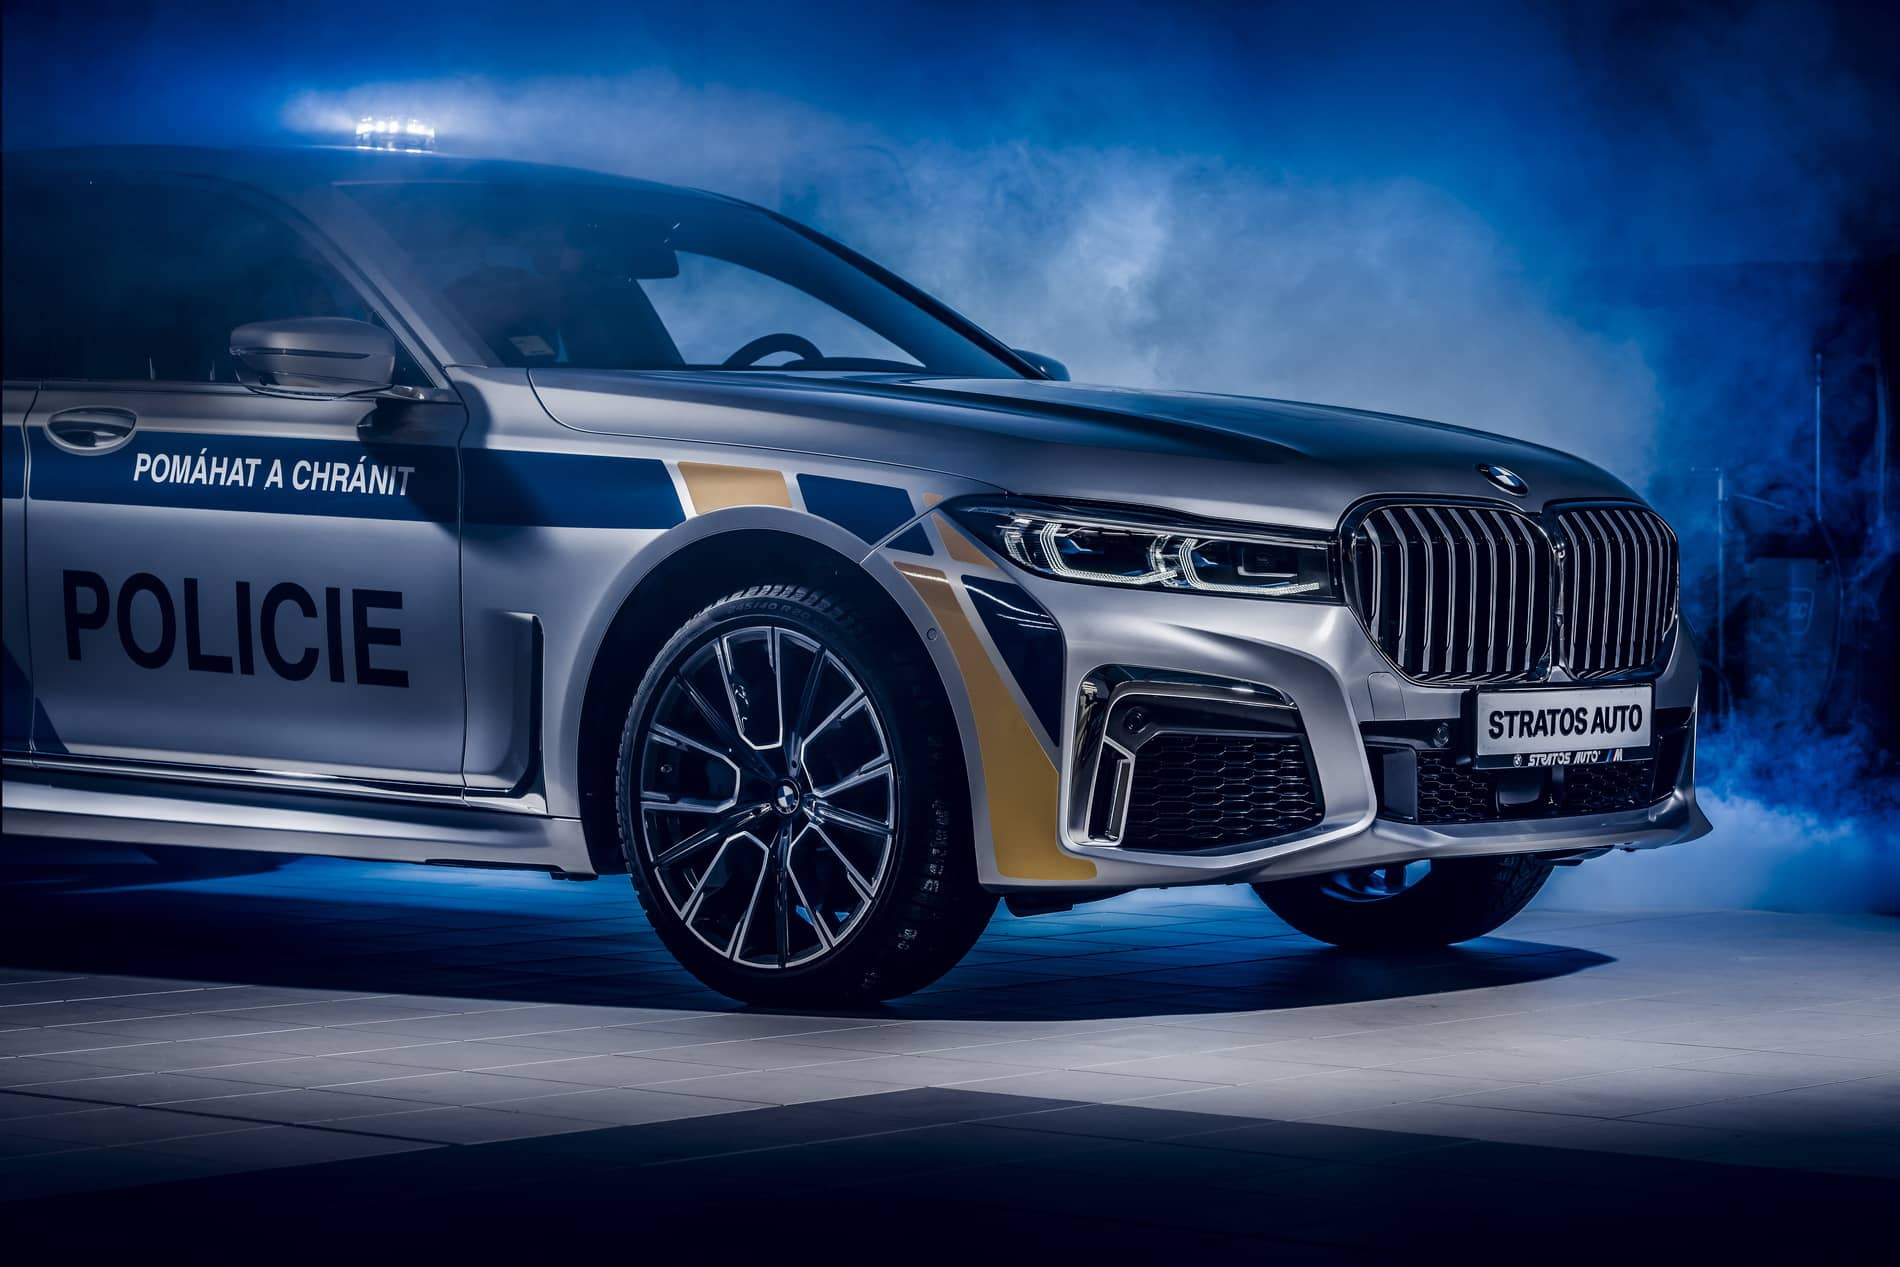 bmw 745le policie_02